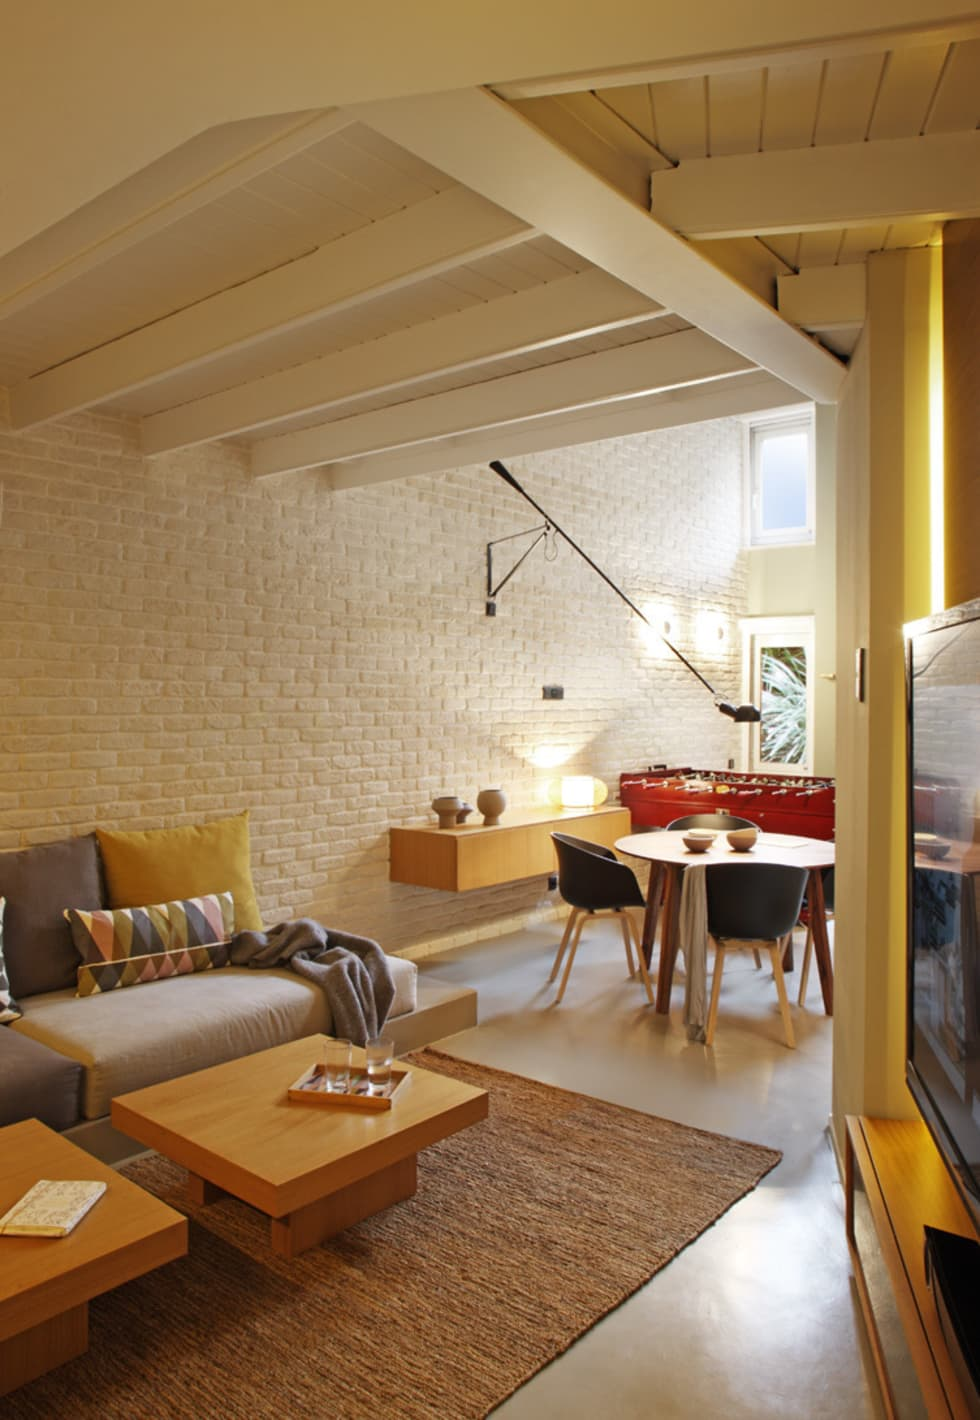 Interior design ideas inspiration pictures homify - Meritxell ribe ...